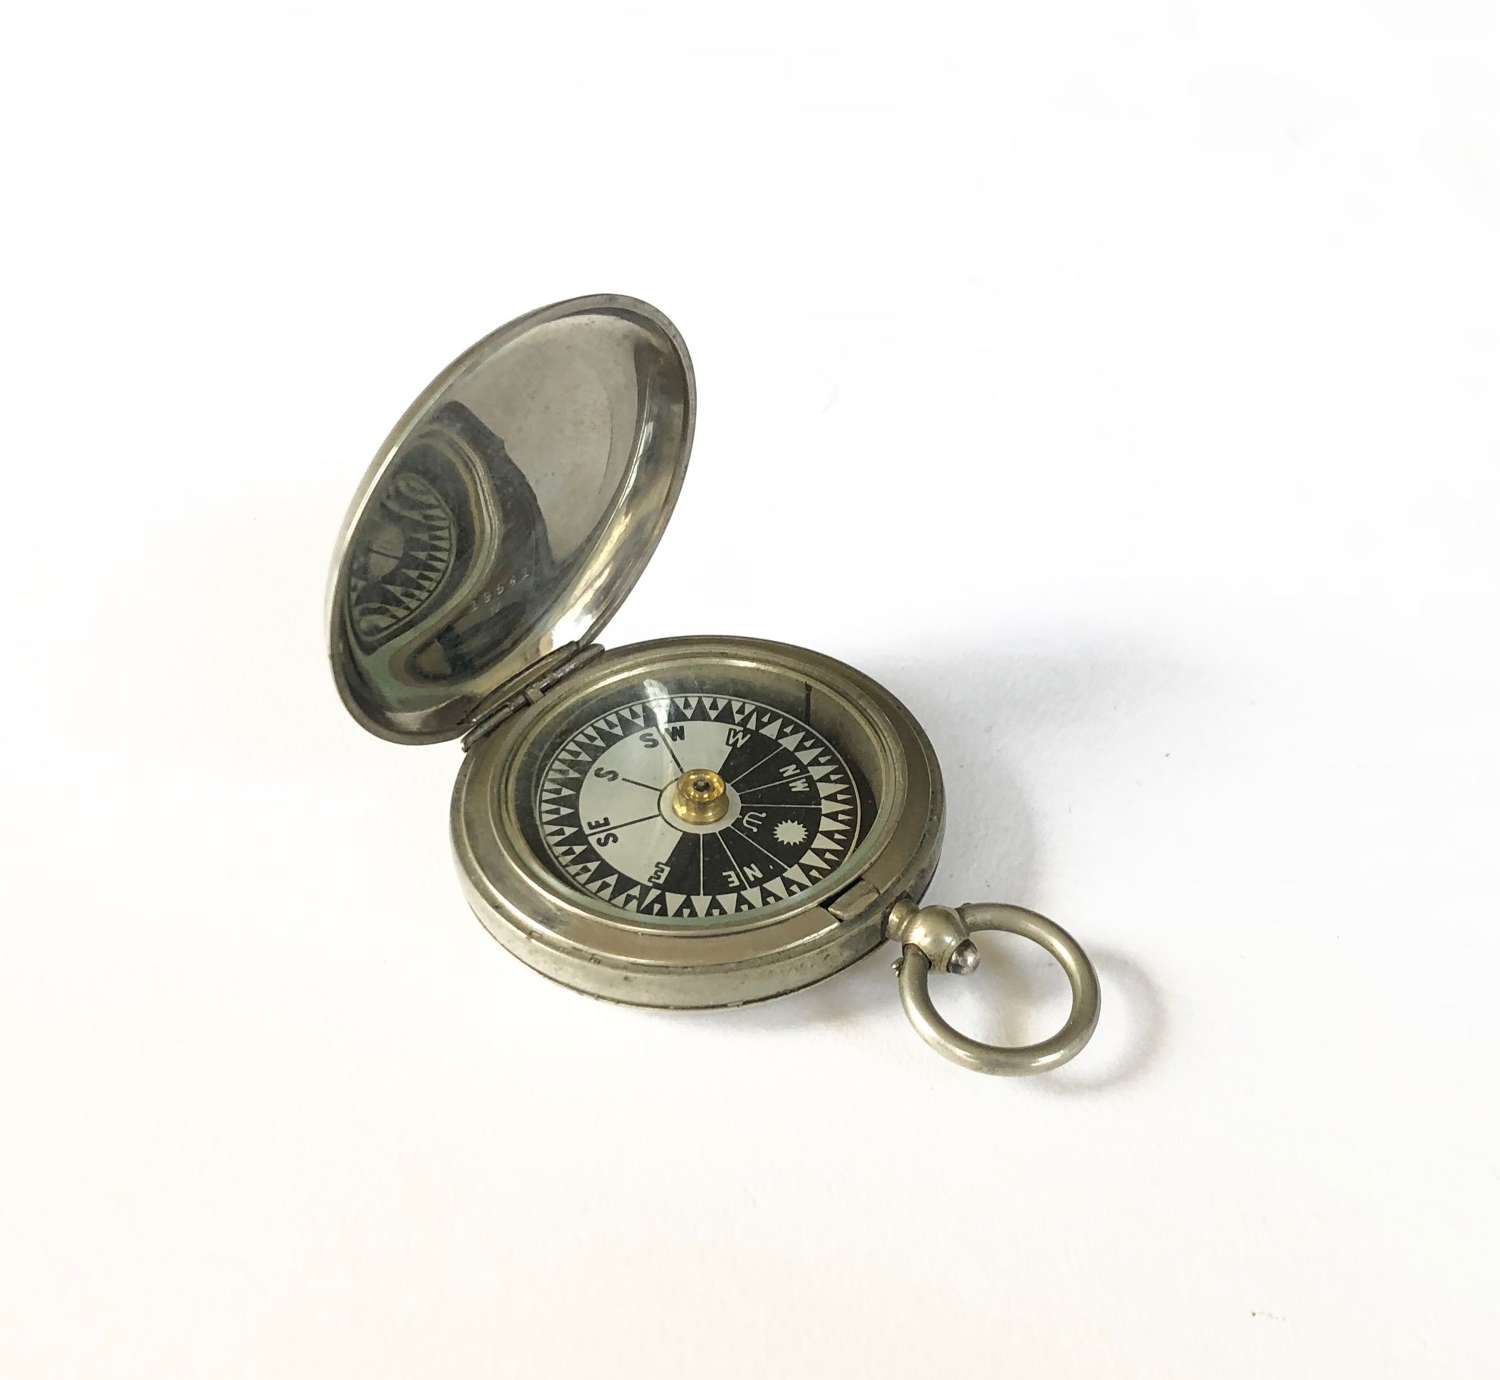 WW1 1915 Issue Pocket Compass.